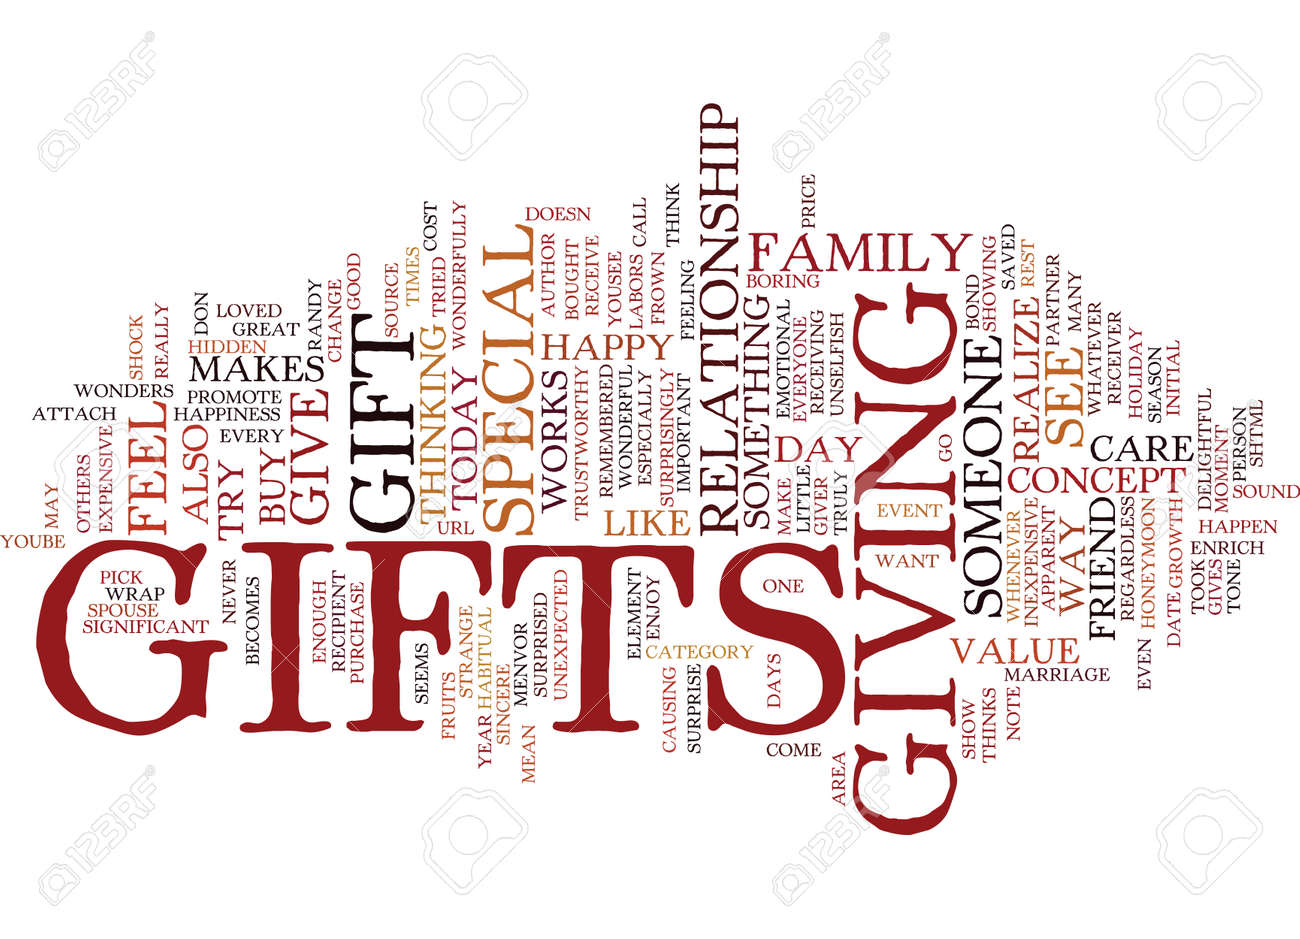 gifts make others feel special text background word cloud concept